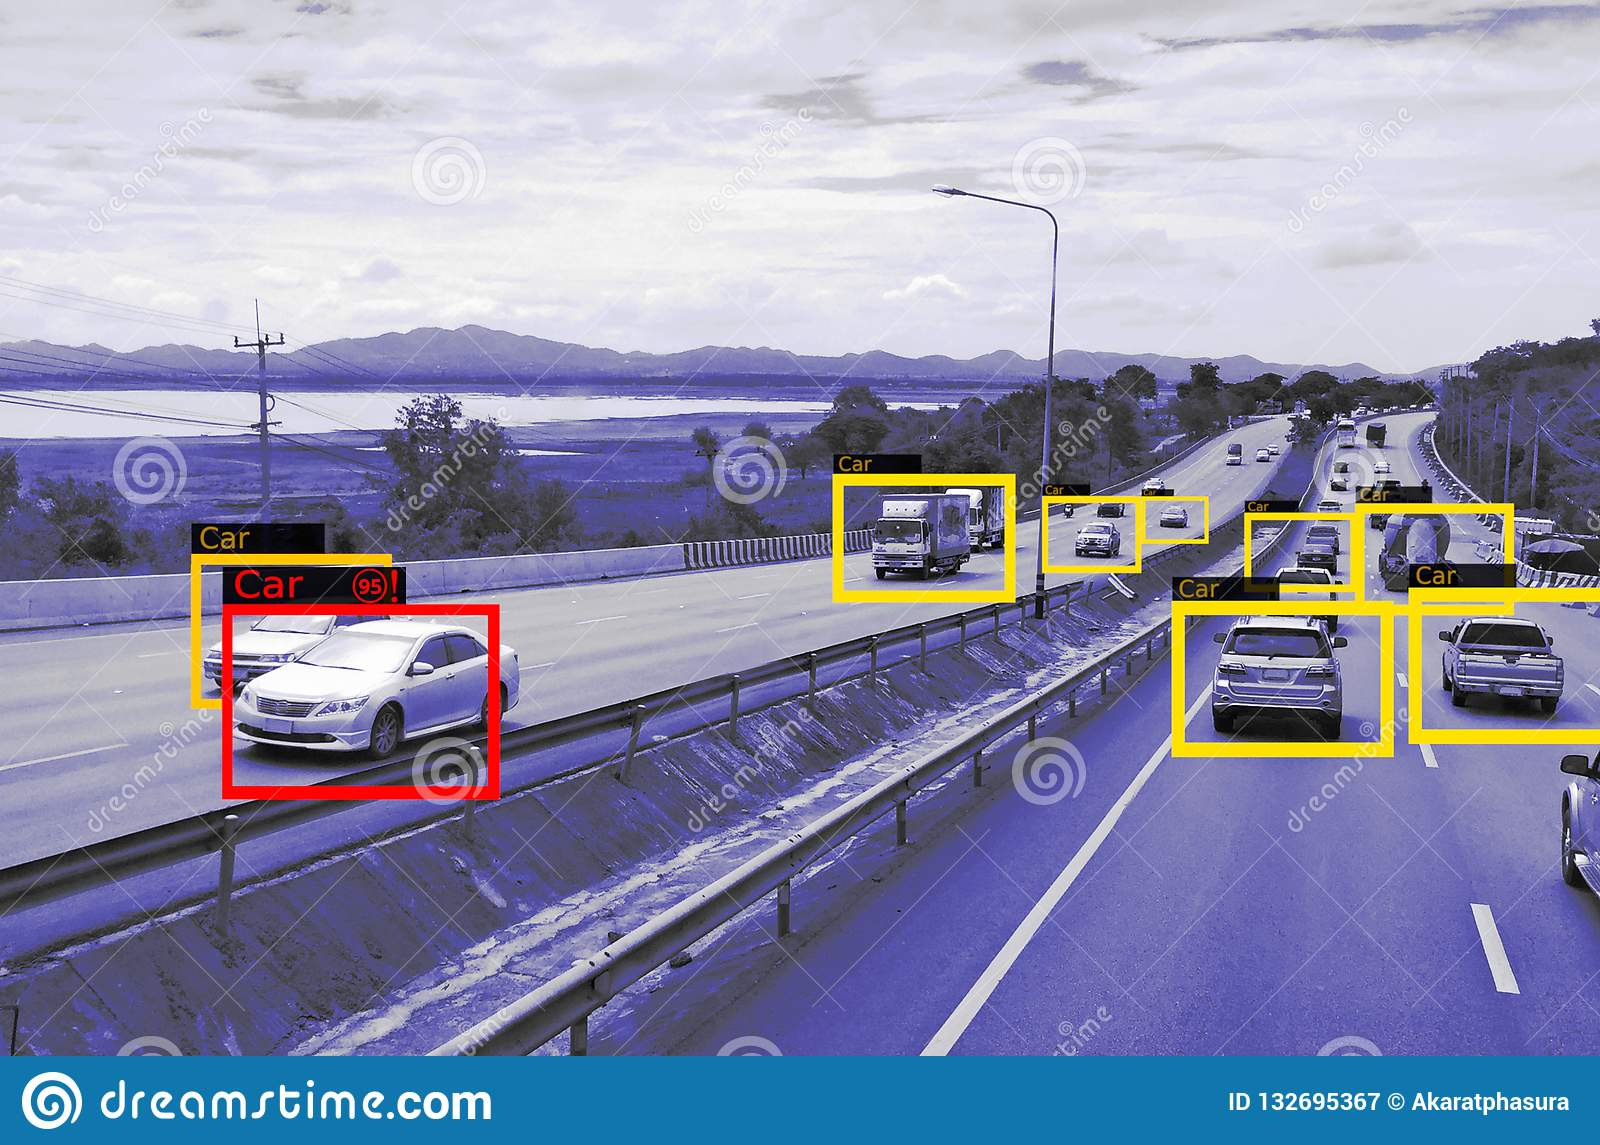 Machine Learning and AI to Identify Objects technology, Artificial intelligence concept. Image processing, Recognition